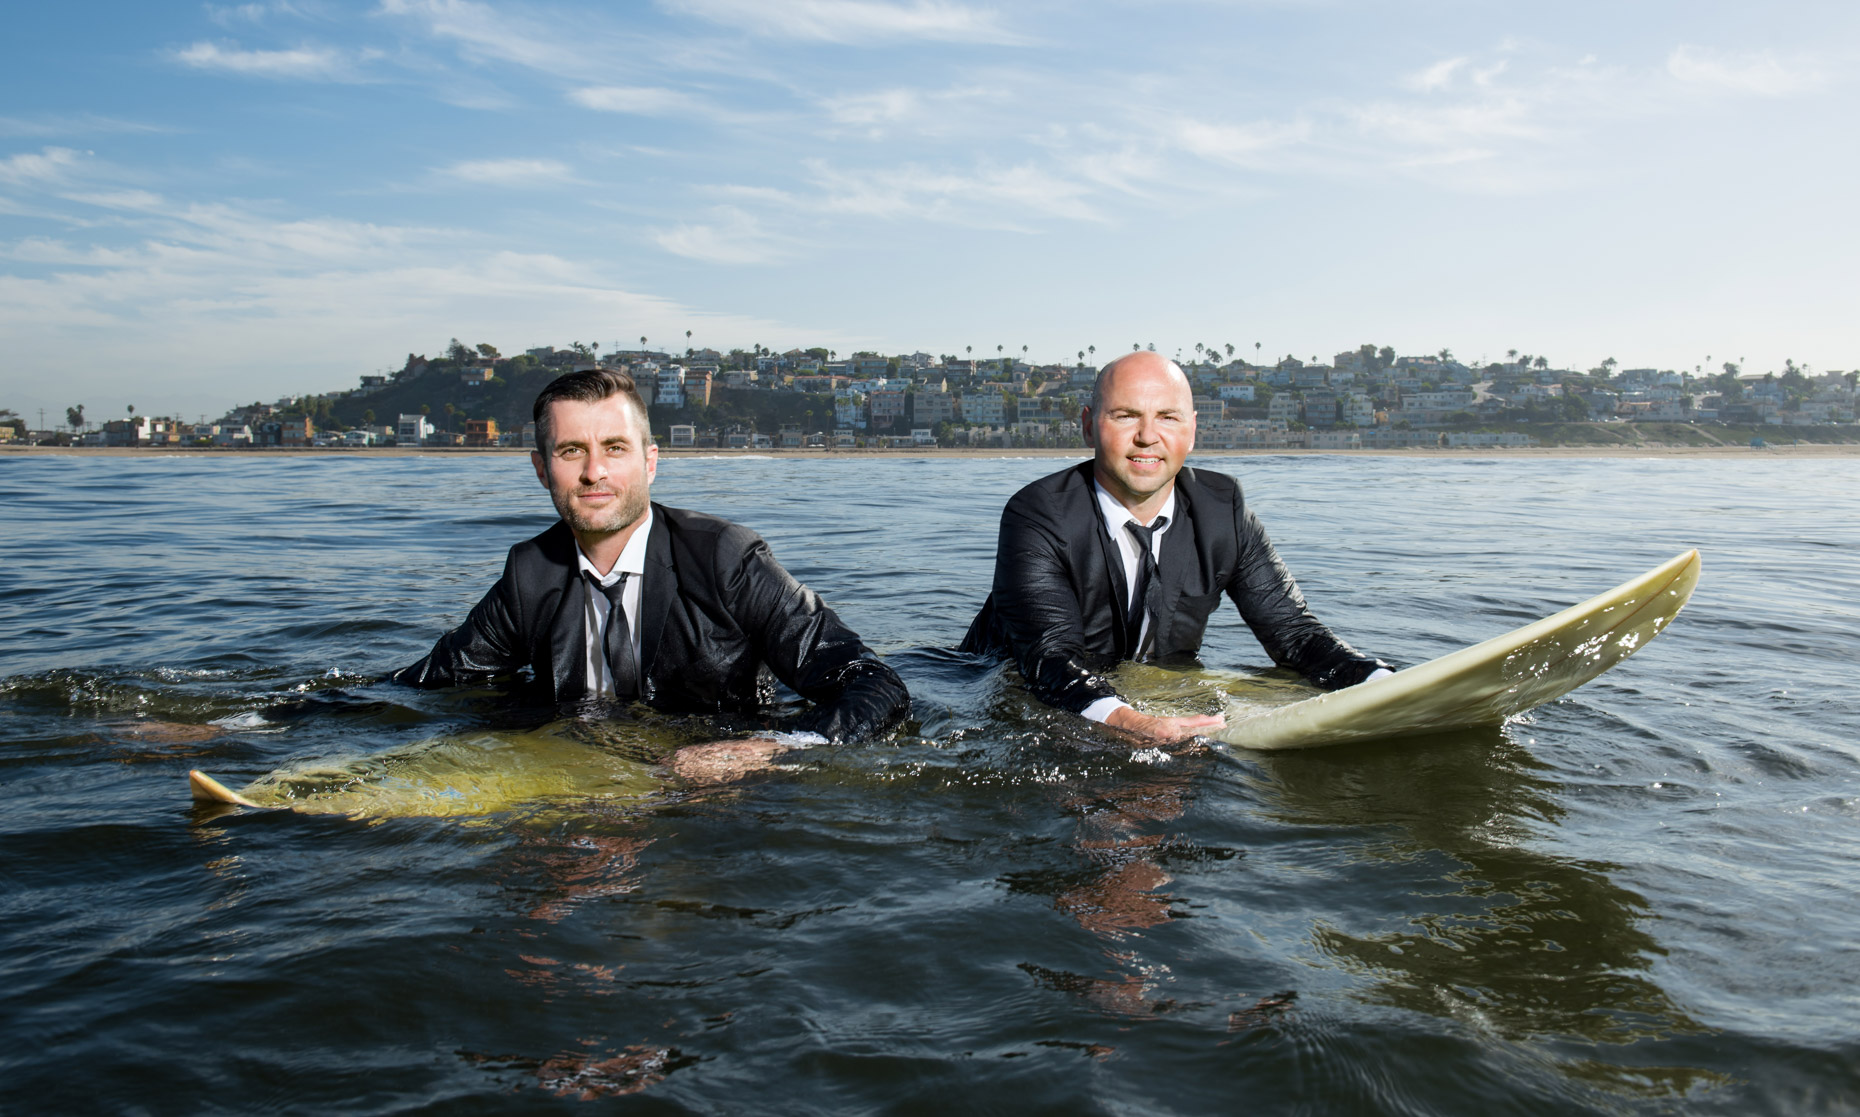 Swell-surfers-in-suits